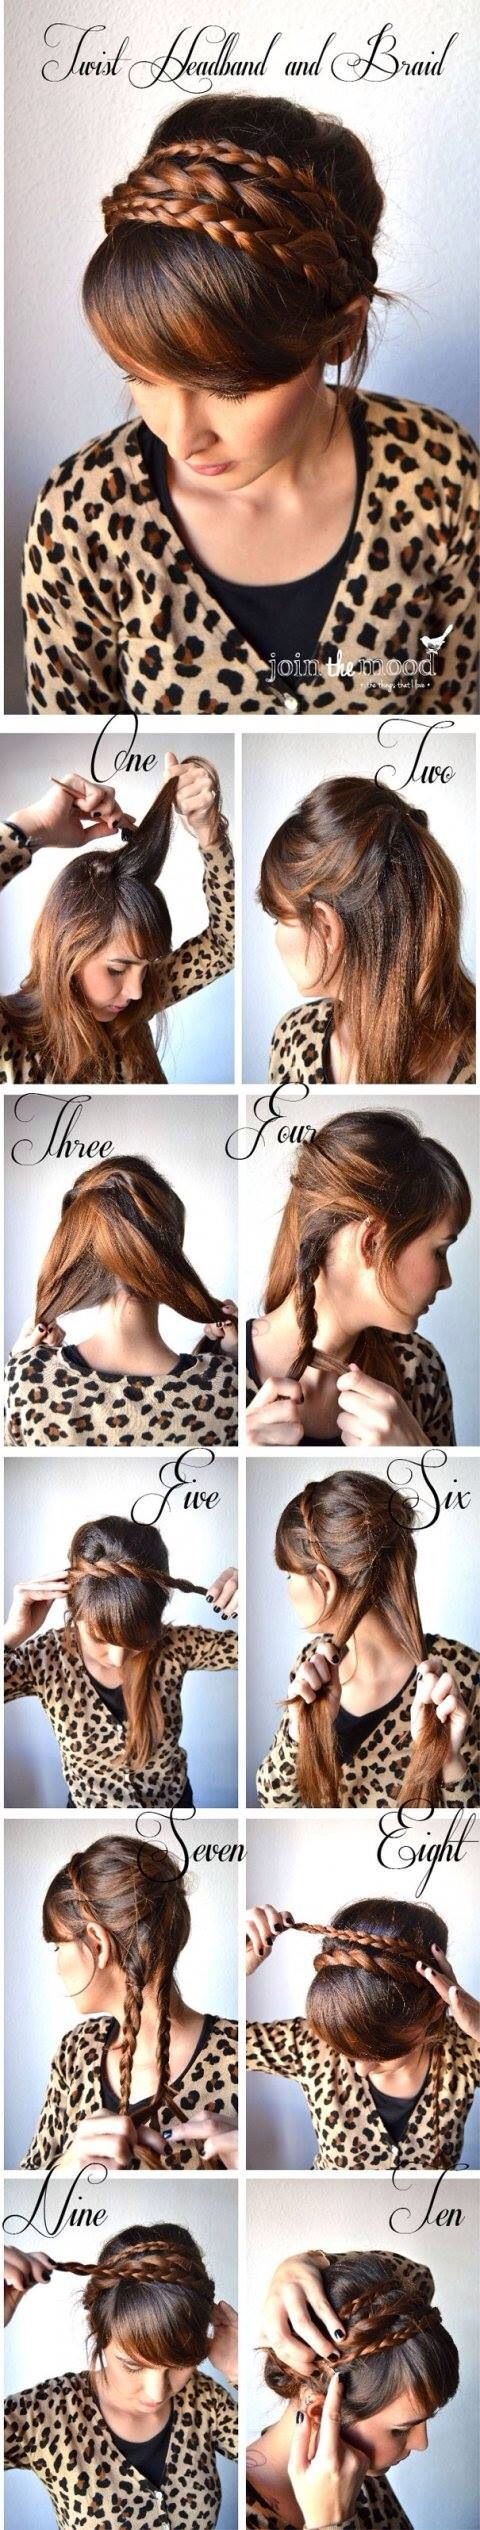 Gonna have to try this x